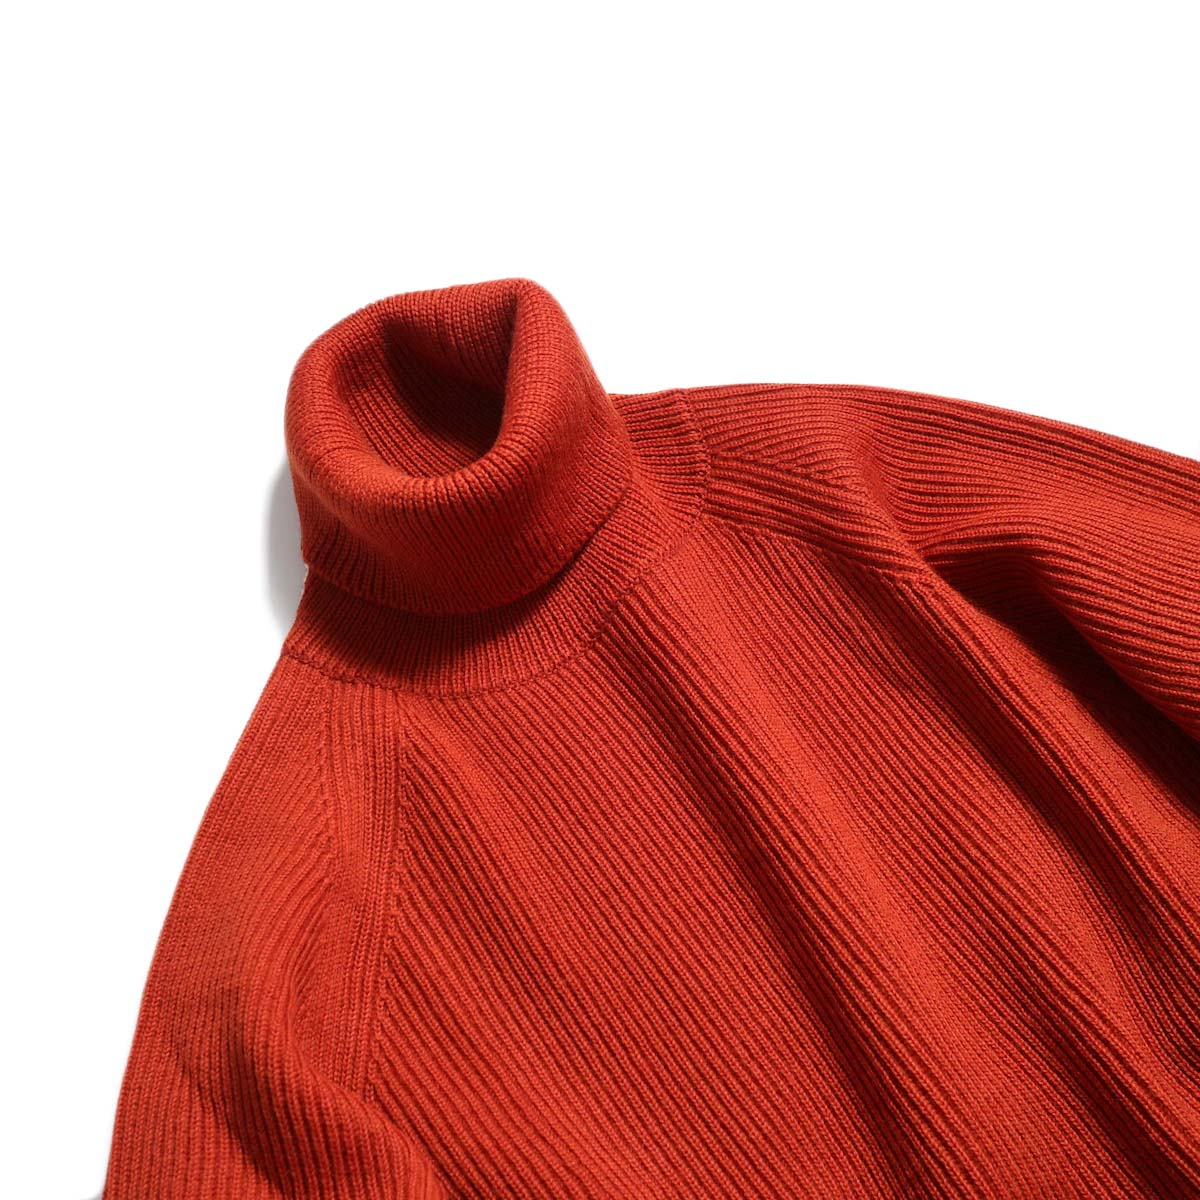 Living Concept / LOW GAUZE TURTLENECK KNIT -RED ネック